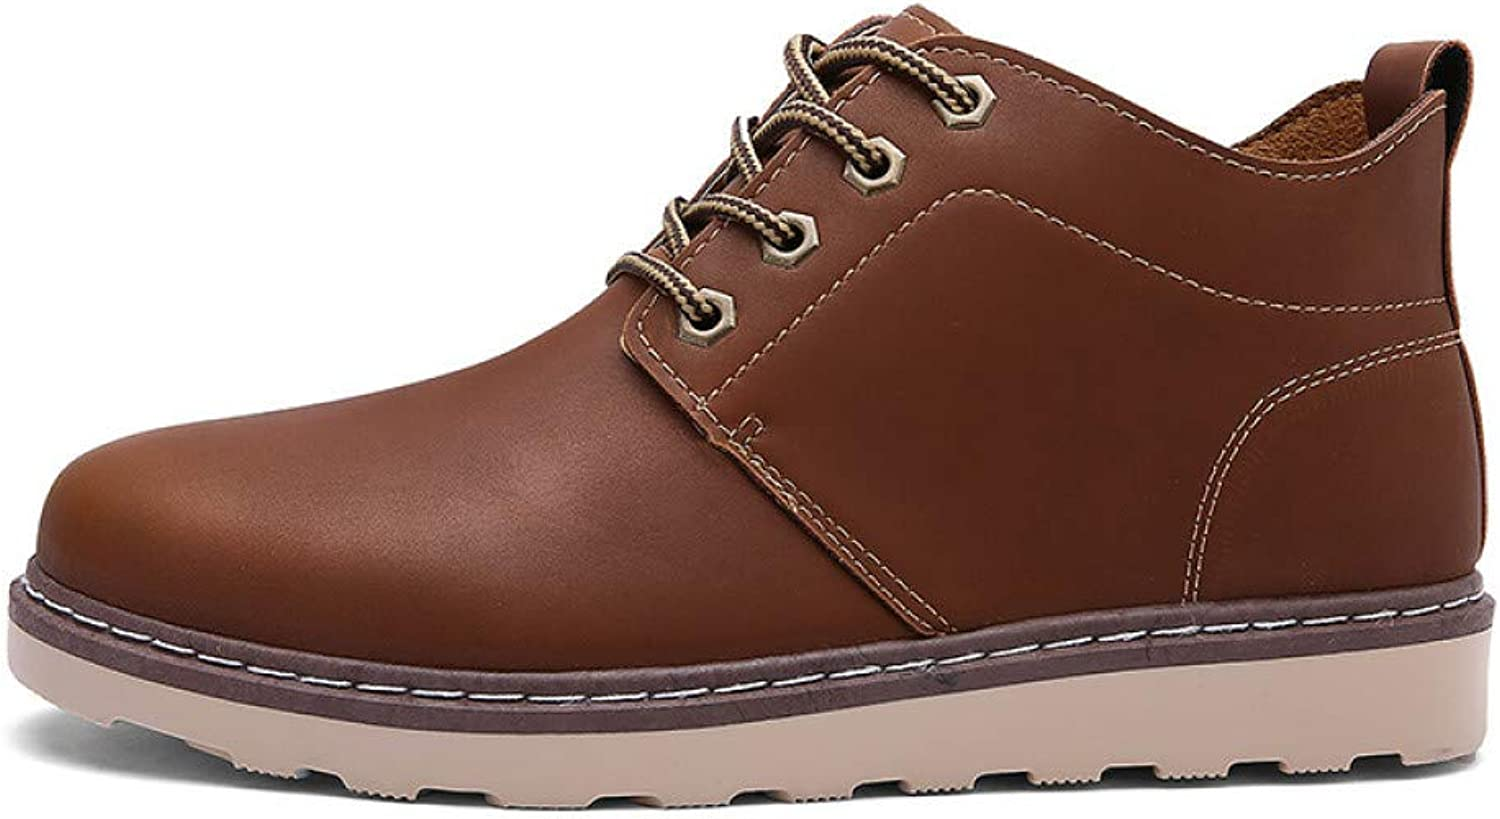 FHCGMX Male Boots For Men shoes Adult Autumn Comfortable Fashion Casual Walking Ankle Work Boots Designer